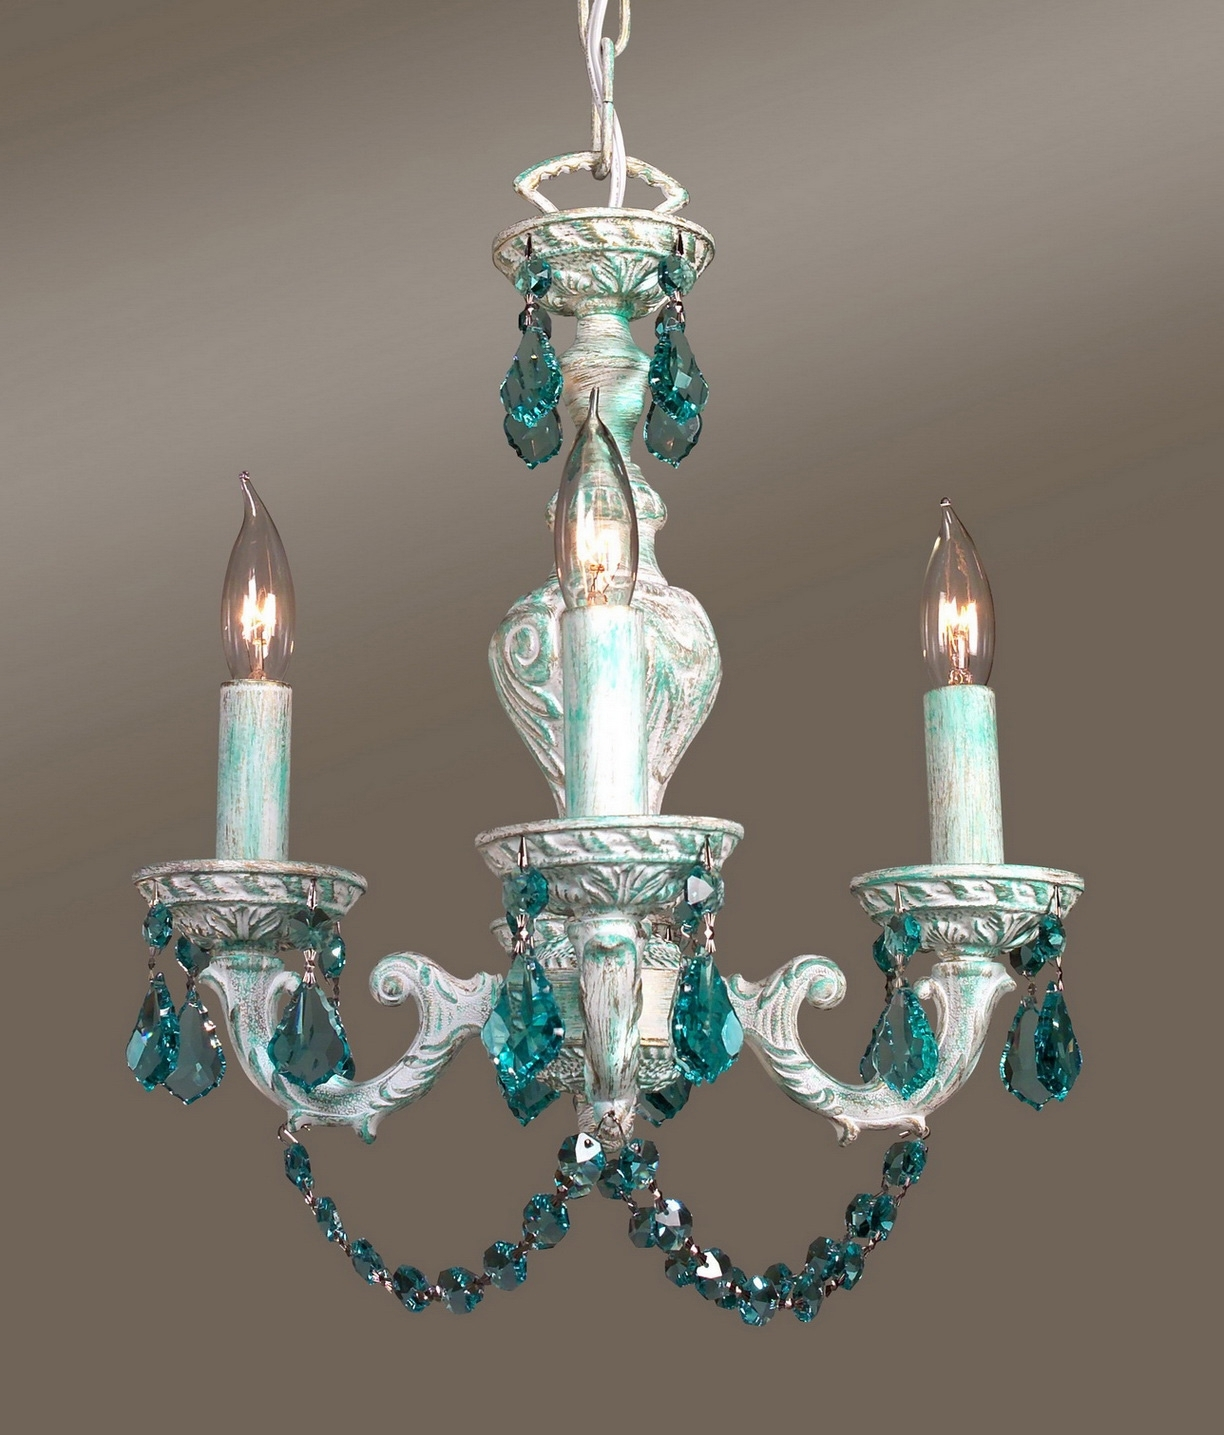 Turquoise Mini Chandeliers Intended For Favorite Mini Chandeliers For Bedrooms Images (View 3 of 15)